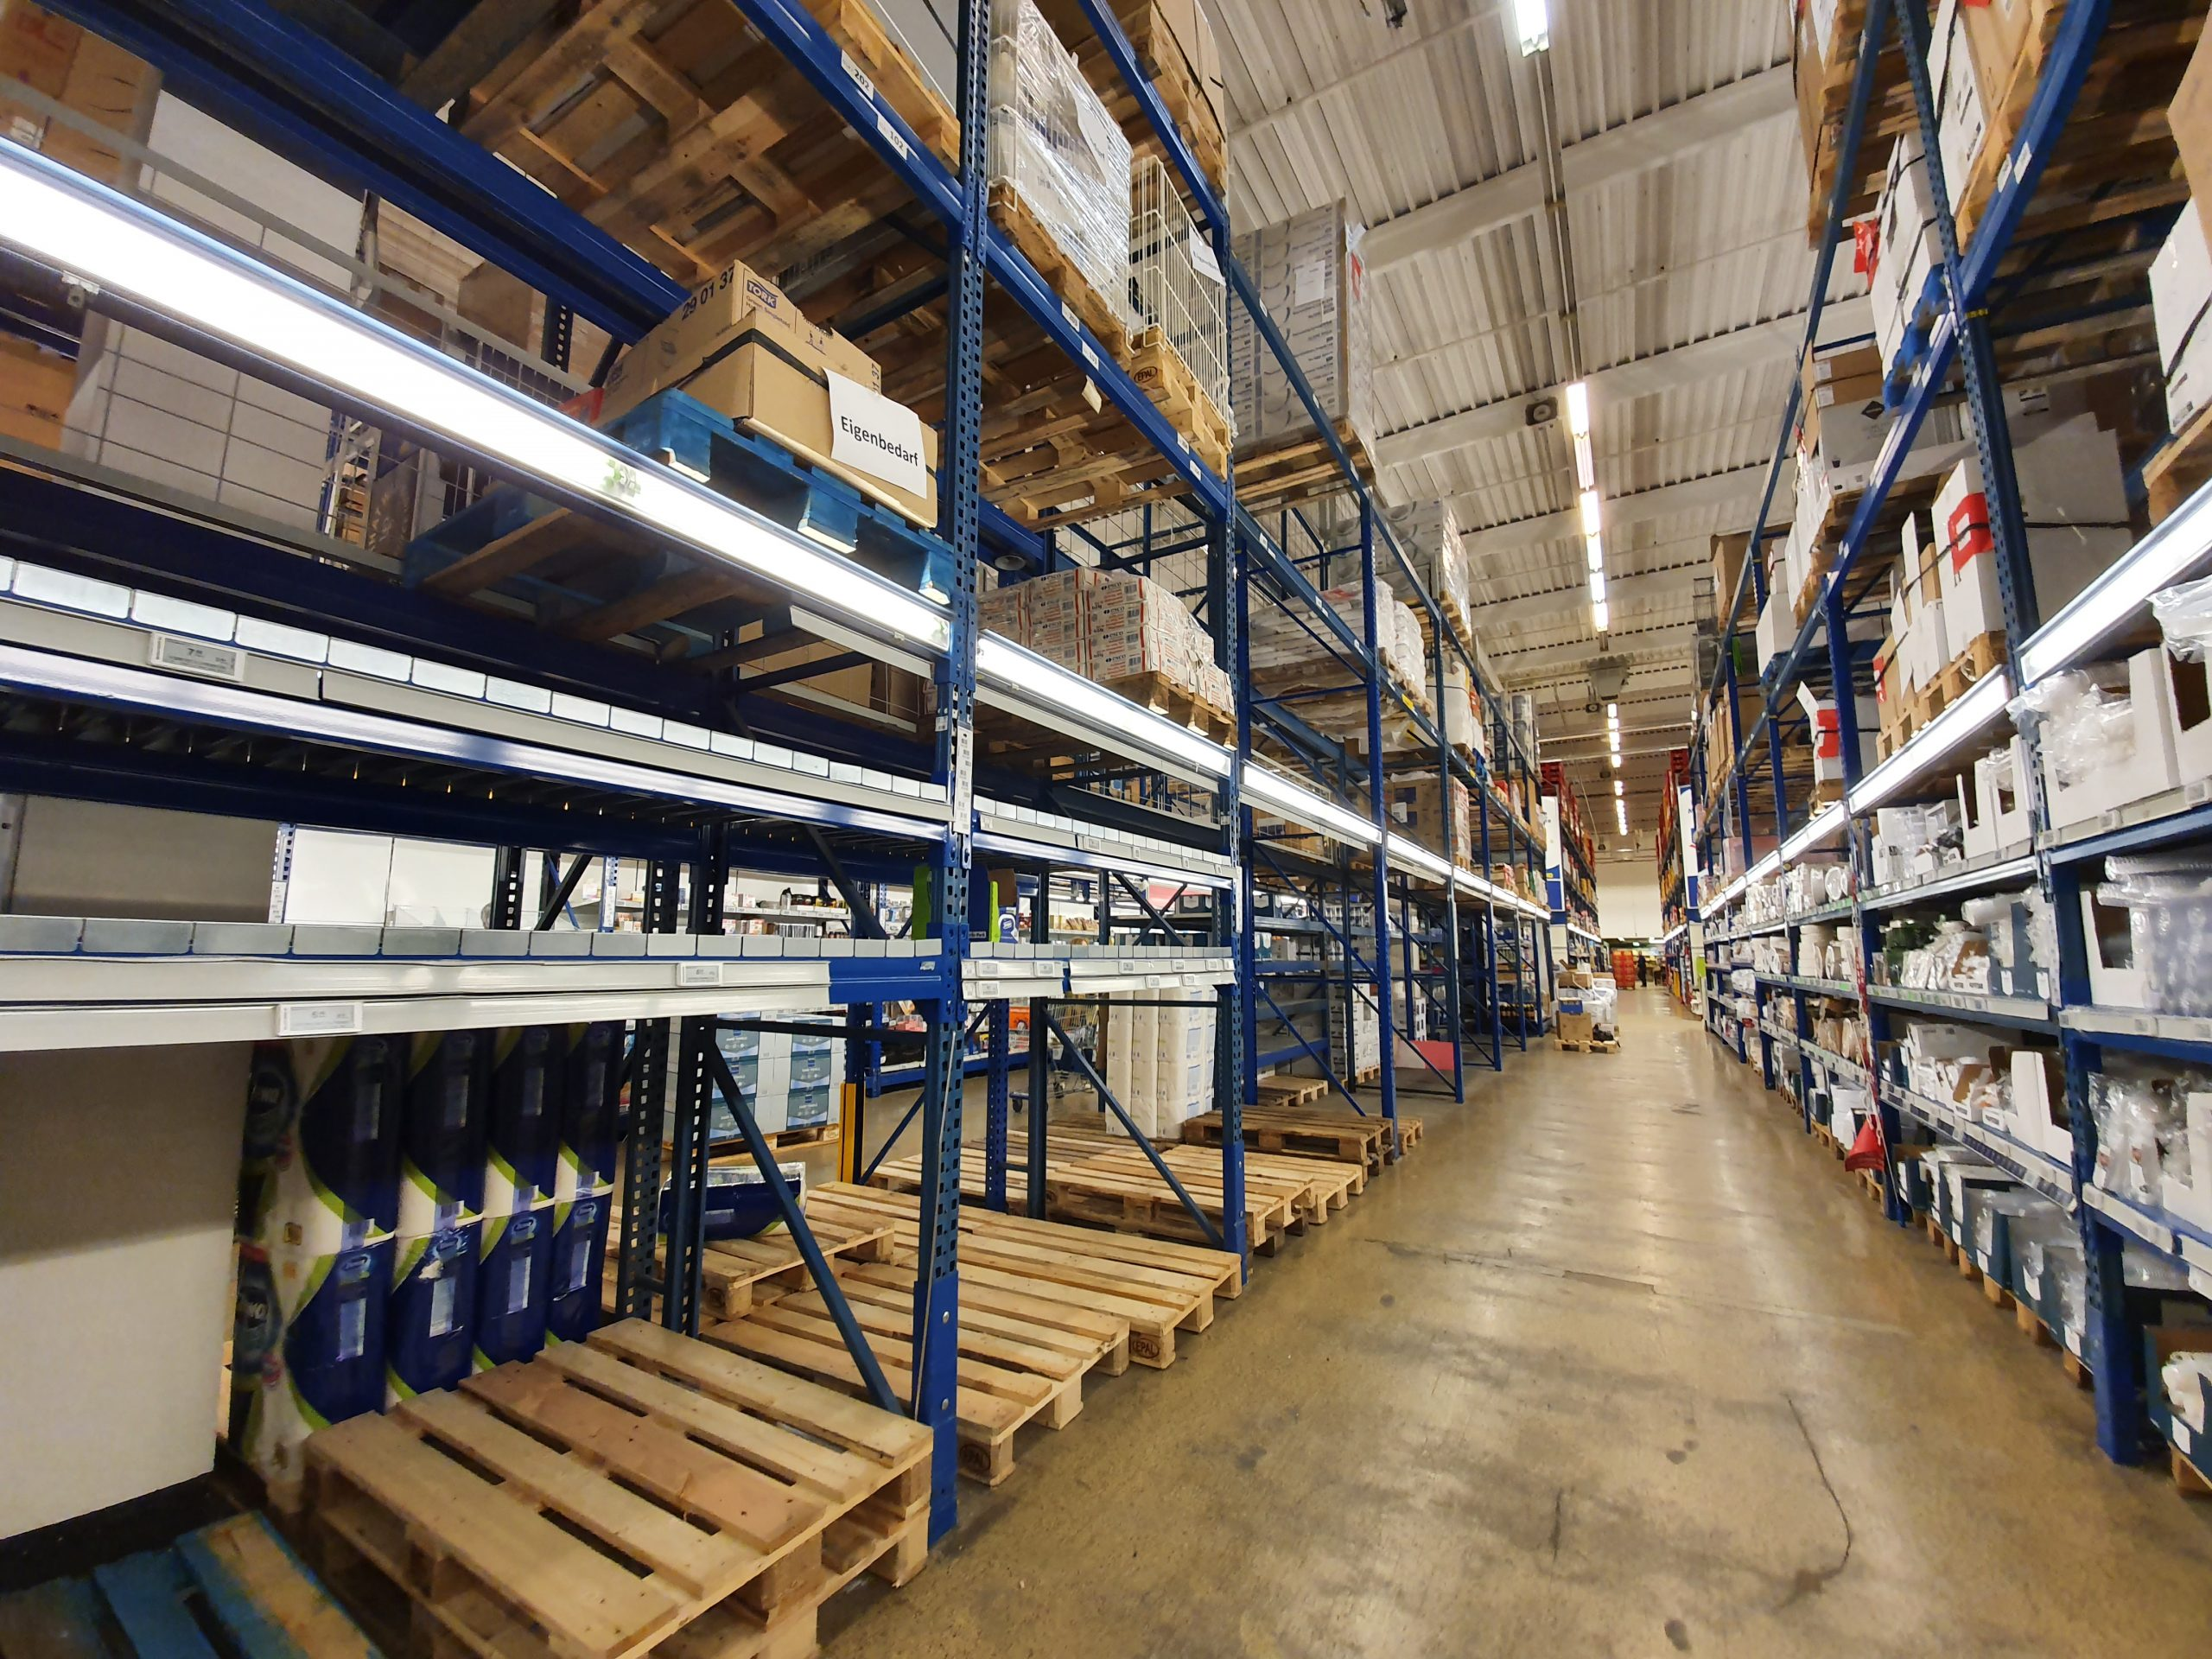 Warehouse Disinfectant Company